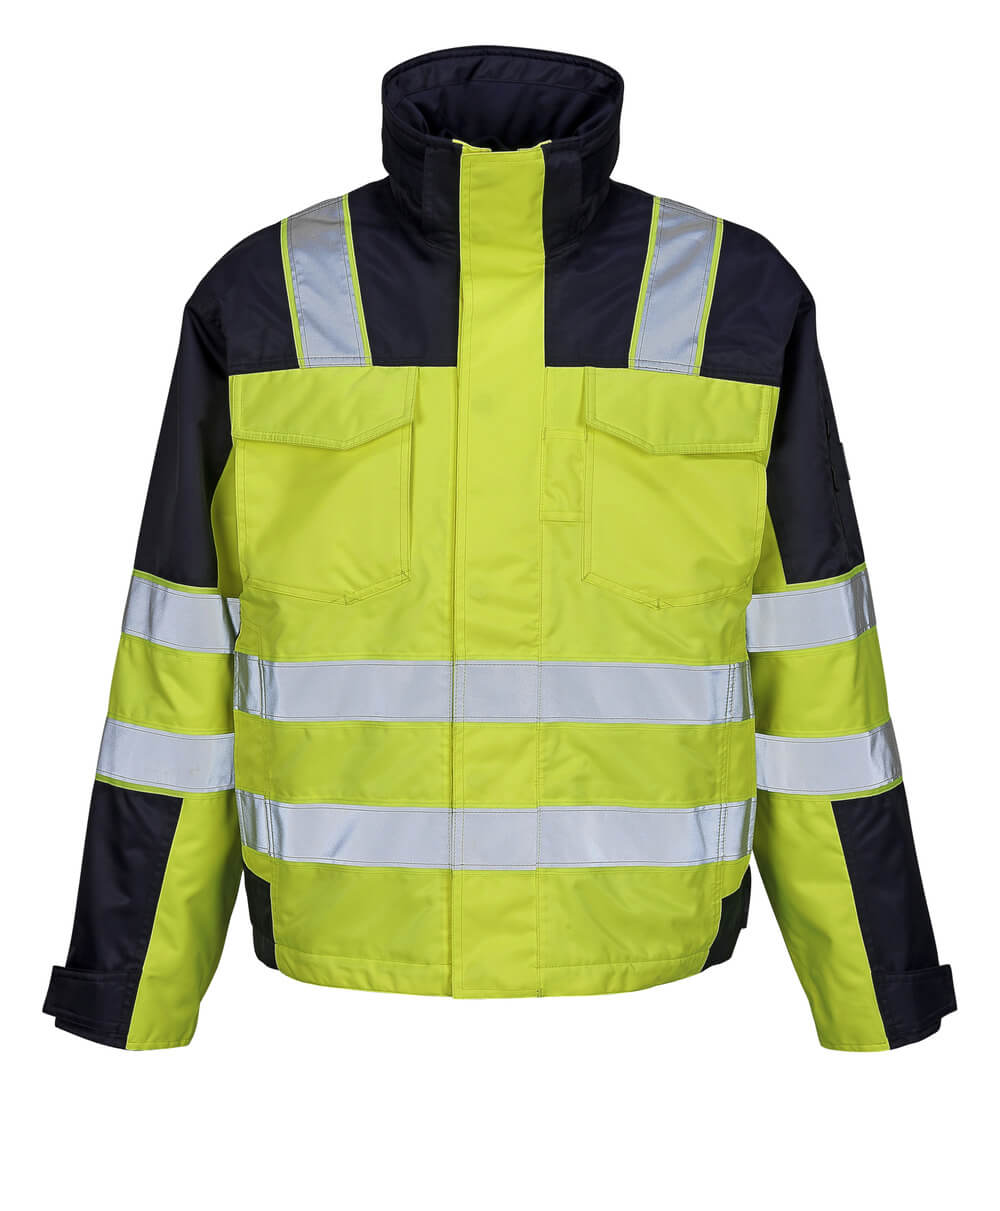 05023-880-171 Winter Jacket - hi-vis yellow/navy